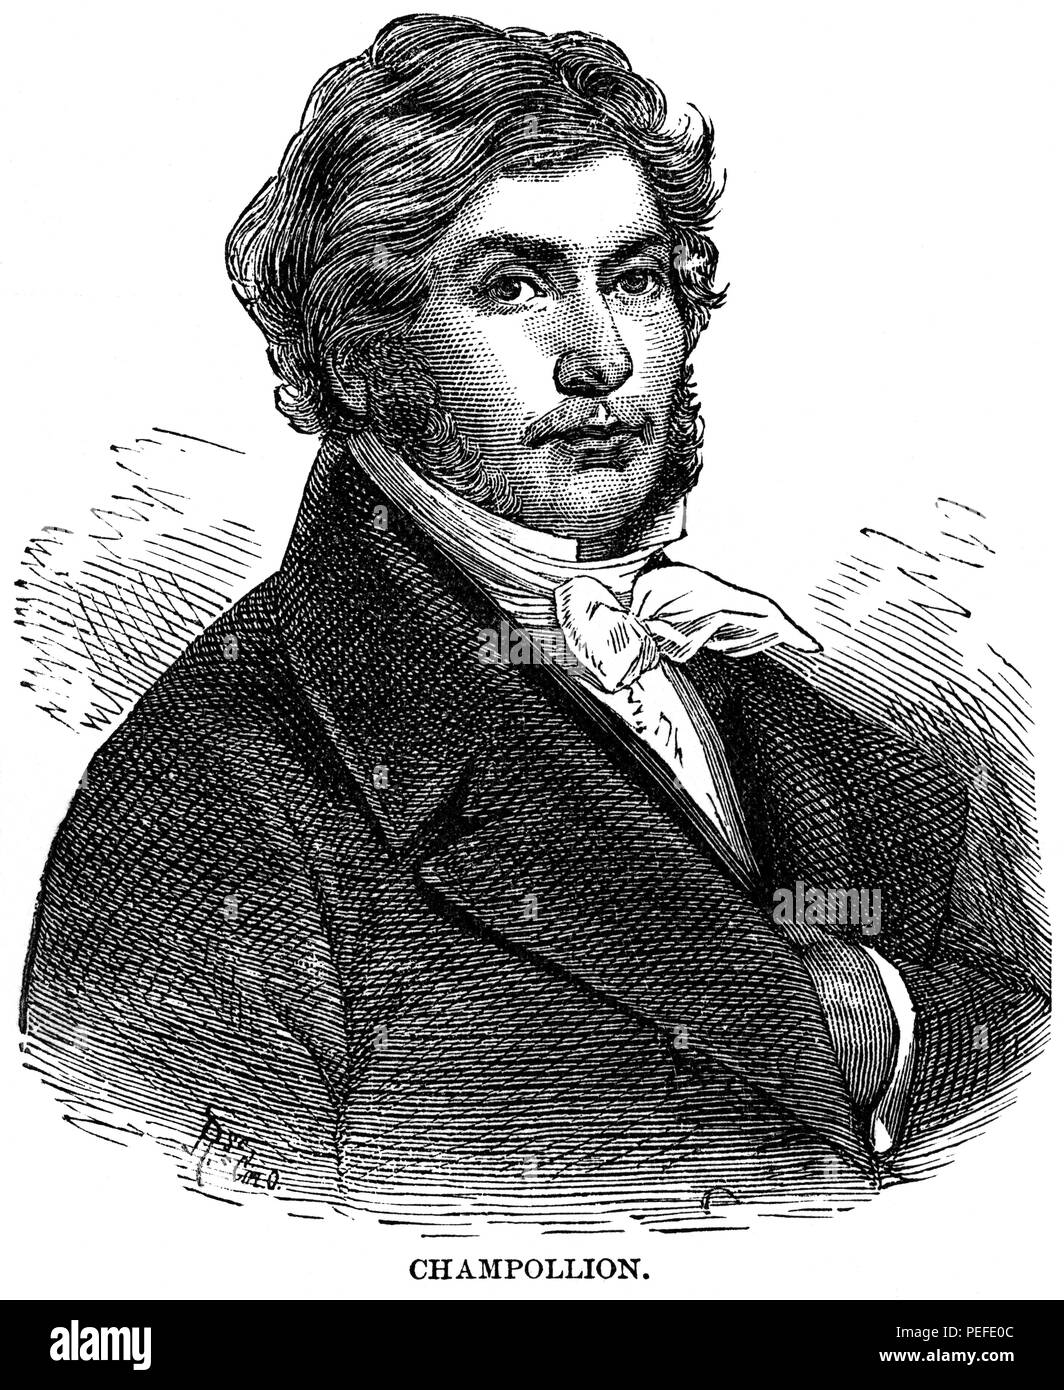 Jean-François Champollion (1790-1832), French Scholar and Philologist, known Primarily as a Decipherer of Egyptian hieroglyphs, Illustration, Cyclopaedia of Universal History, Volume 1, The Ancient World, by John Clark Ridpath, the Jones Brothers Publishing Company, 1885 - Stock Image